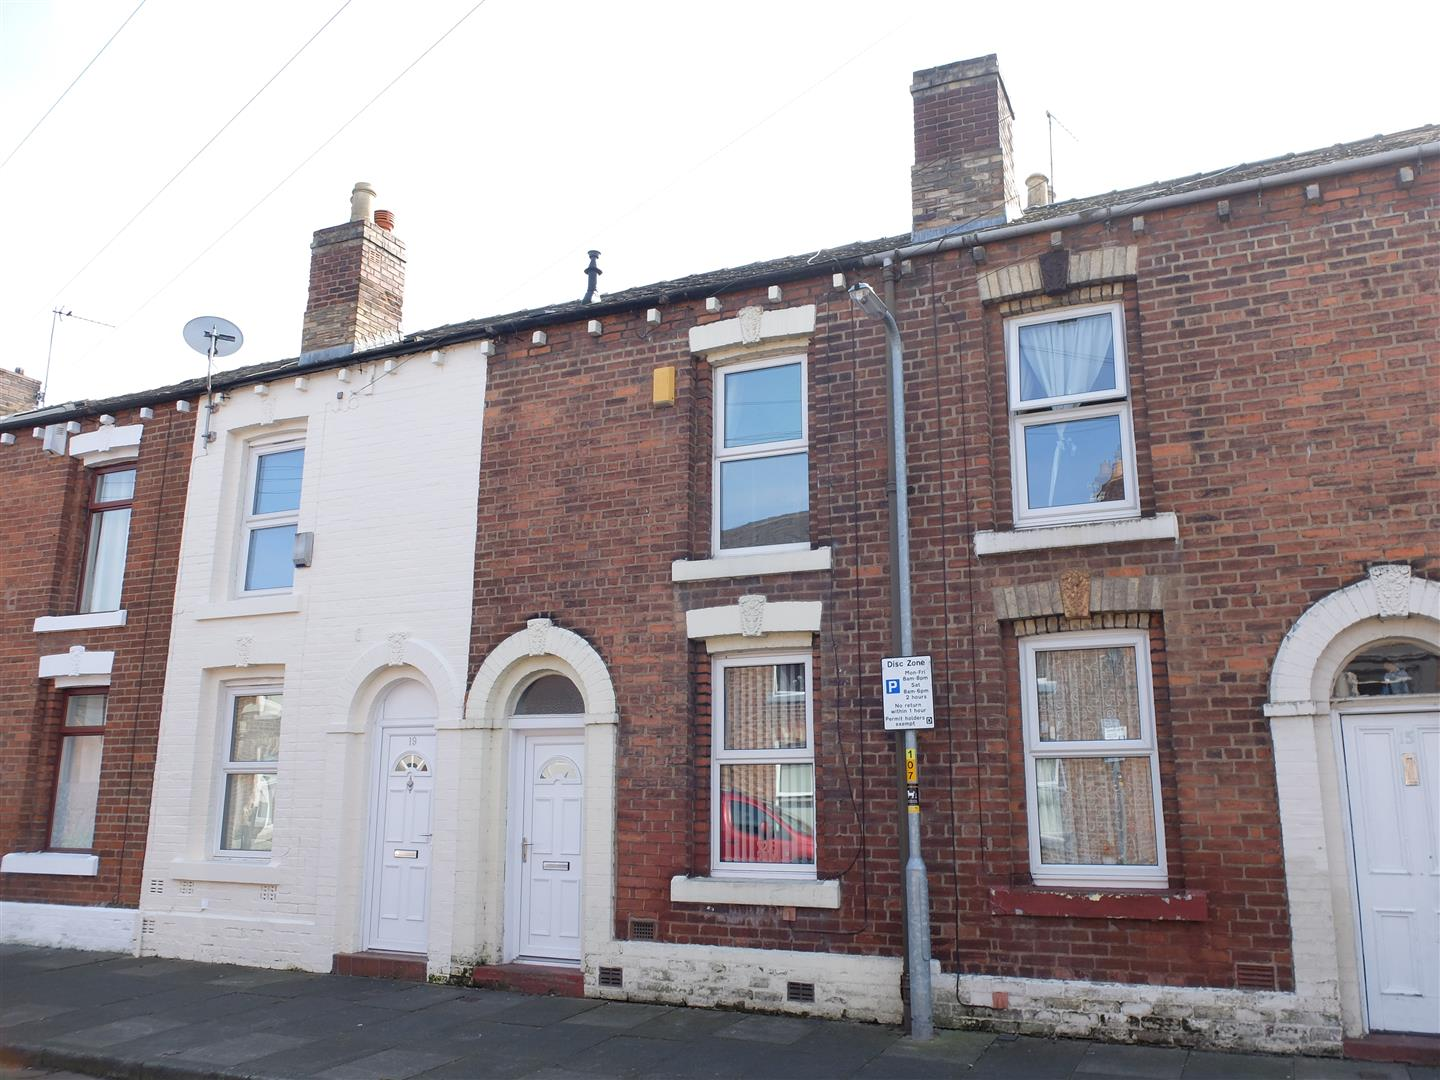 17 East Nelson Street Carlisle 2 Bedrooms House - Mid Terrace On Sale 70,000